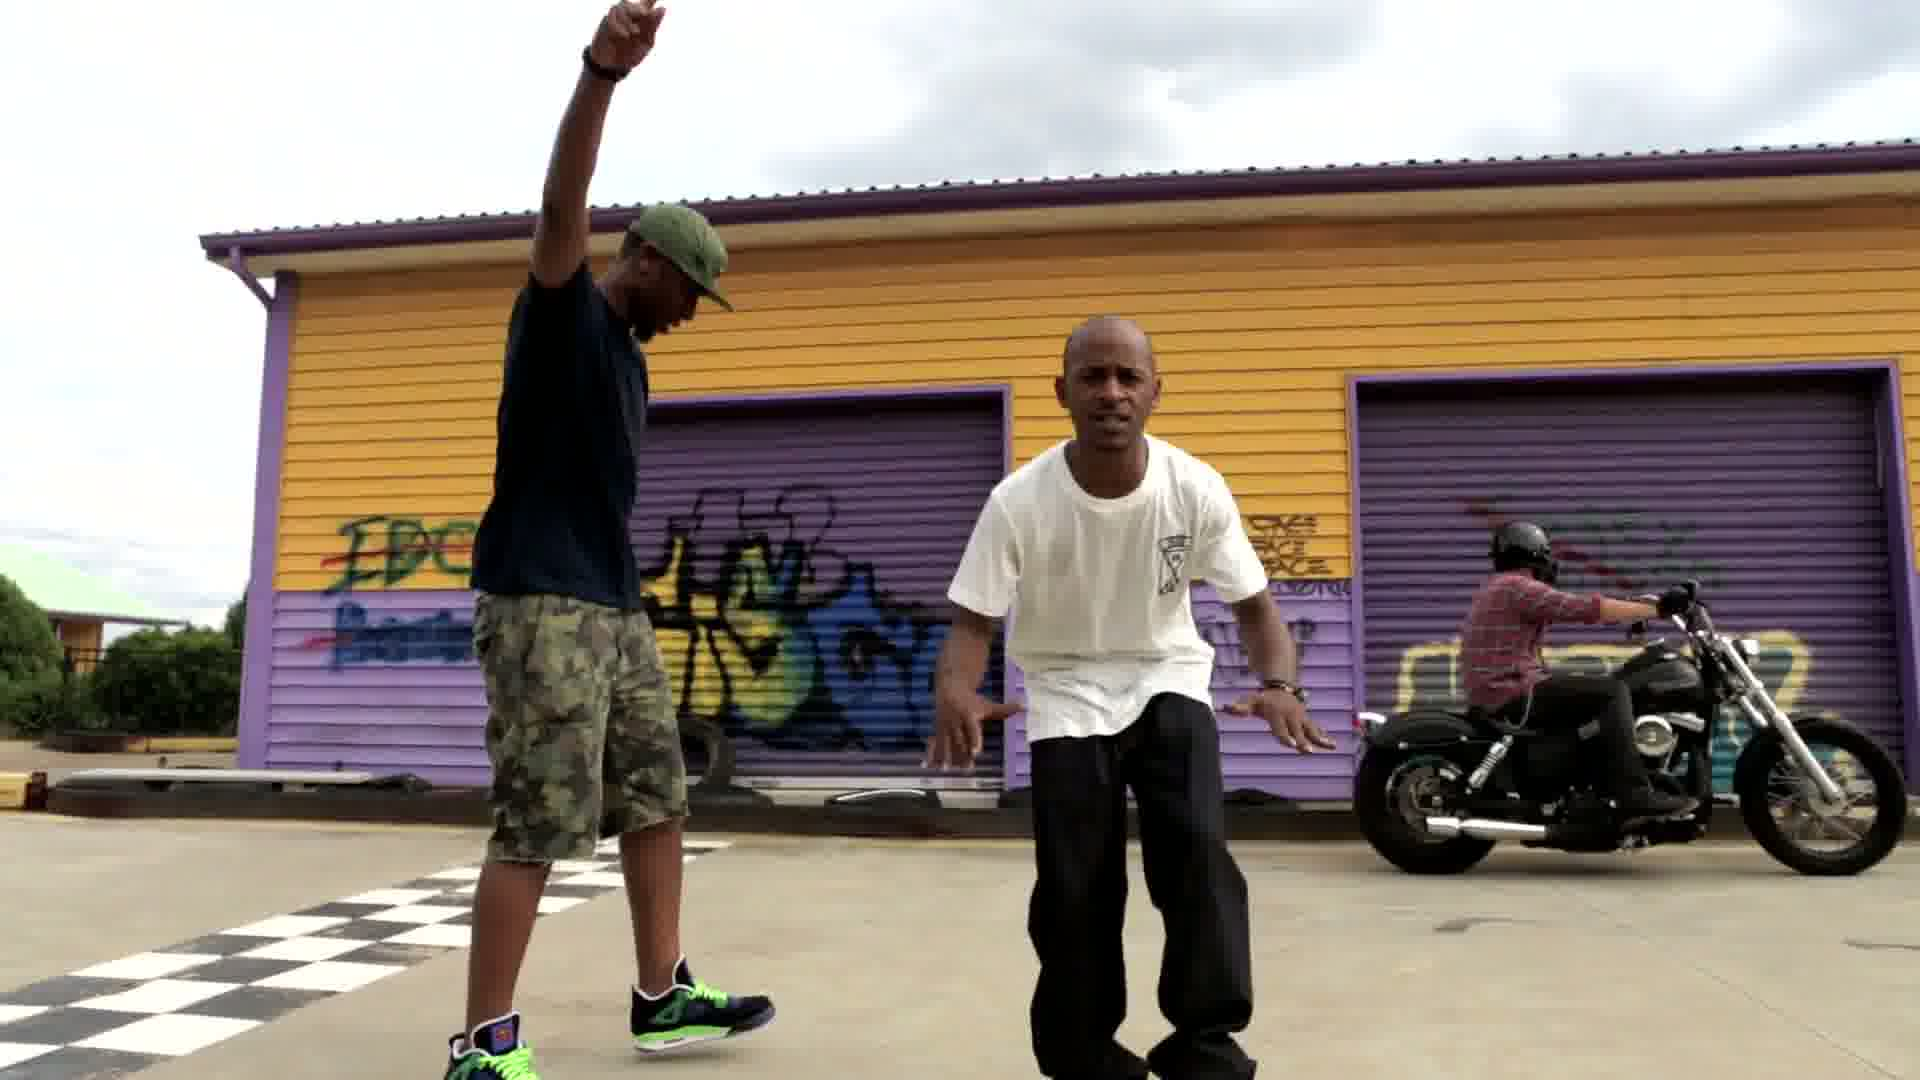 9th Wonder and Buckshot Hold It Down - Go All Out